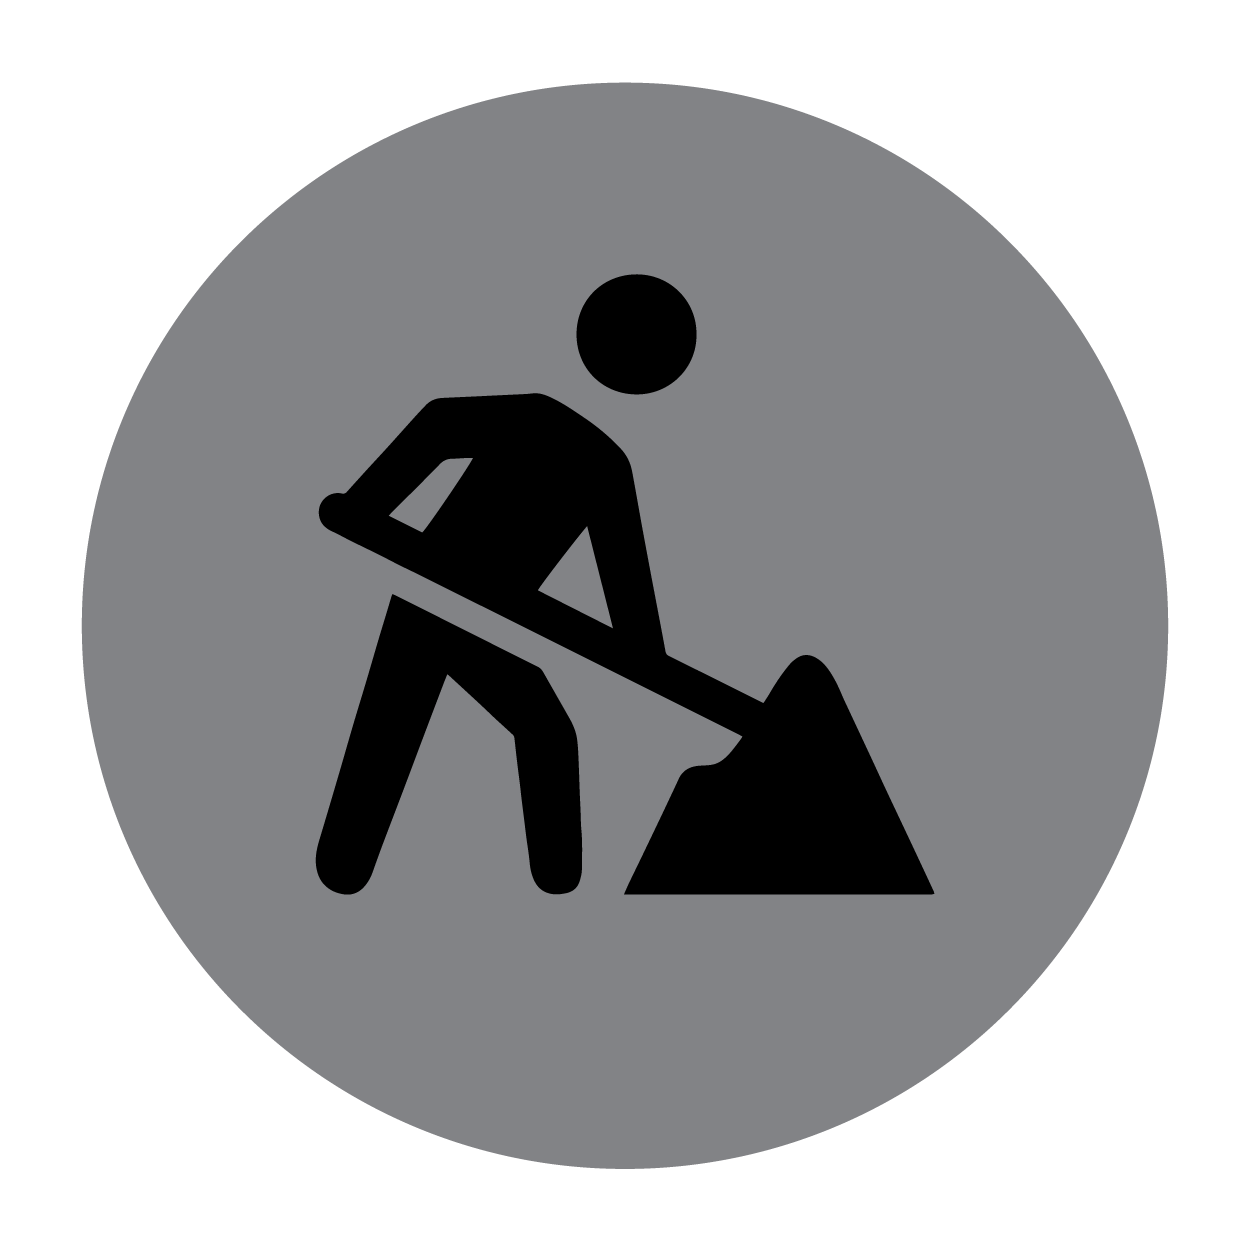 icons_Construction